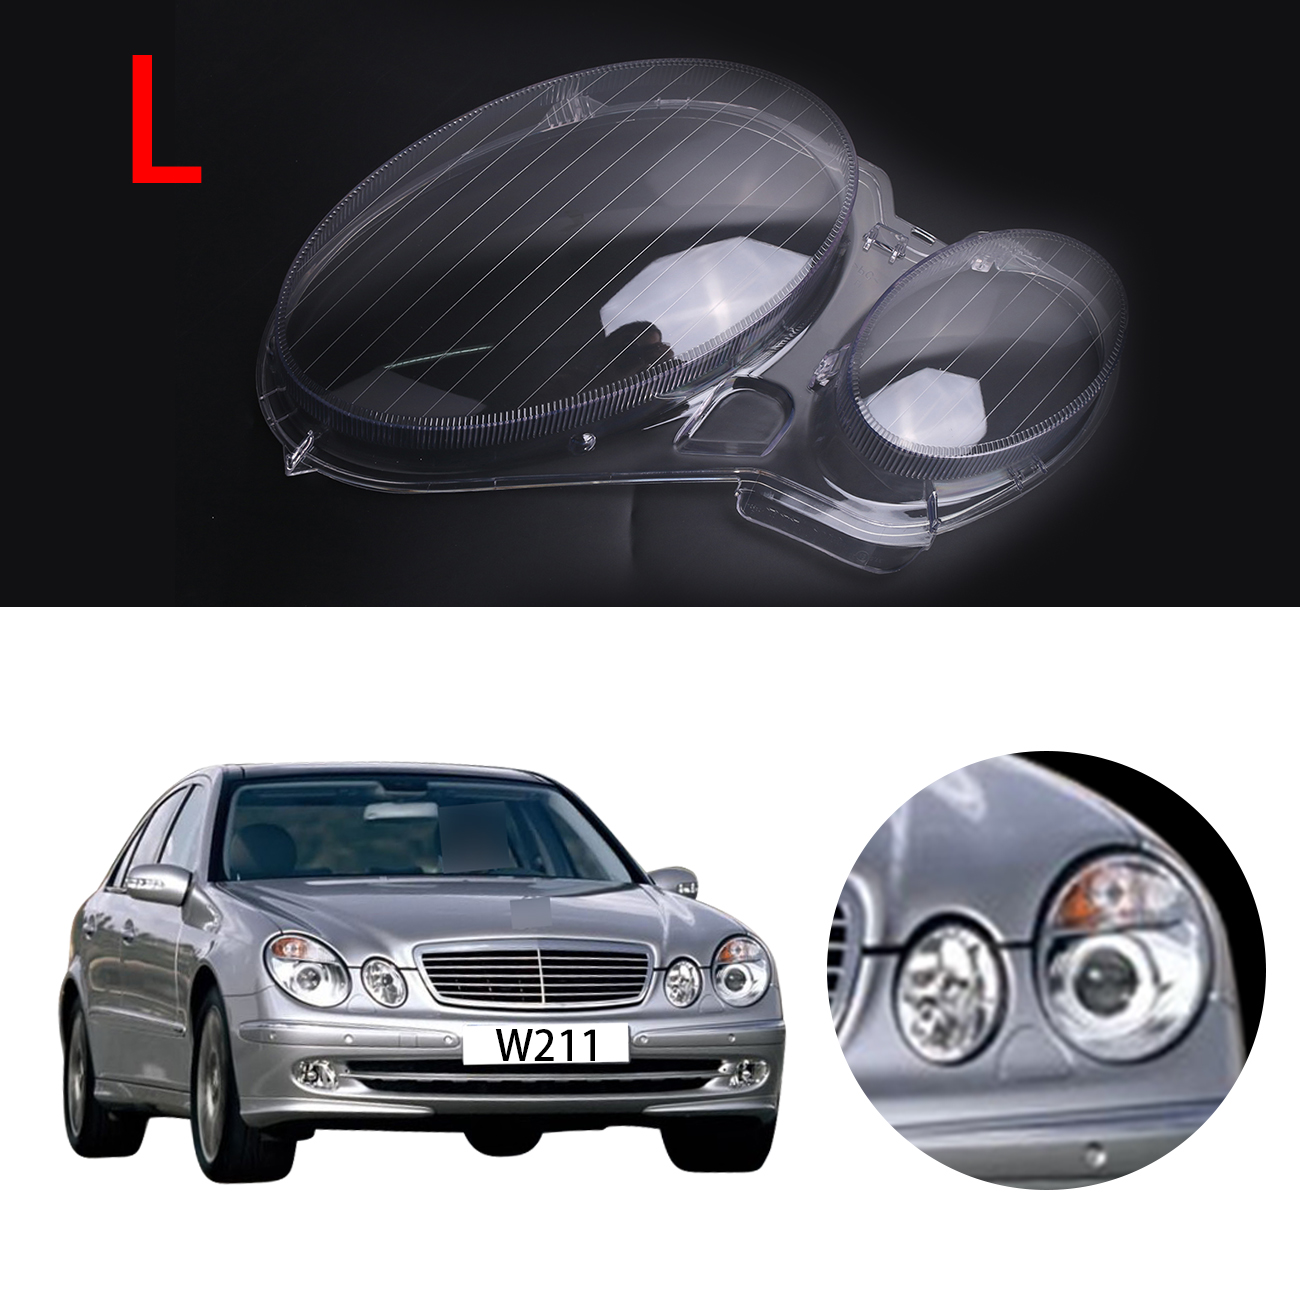 Left Transparent Housing Headlight Lens Cover Lamp Assembly For Mercedes Benz E-CLASS W211 E320 E350 E300 2006 - 2008 #PD554-L